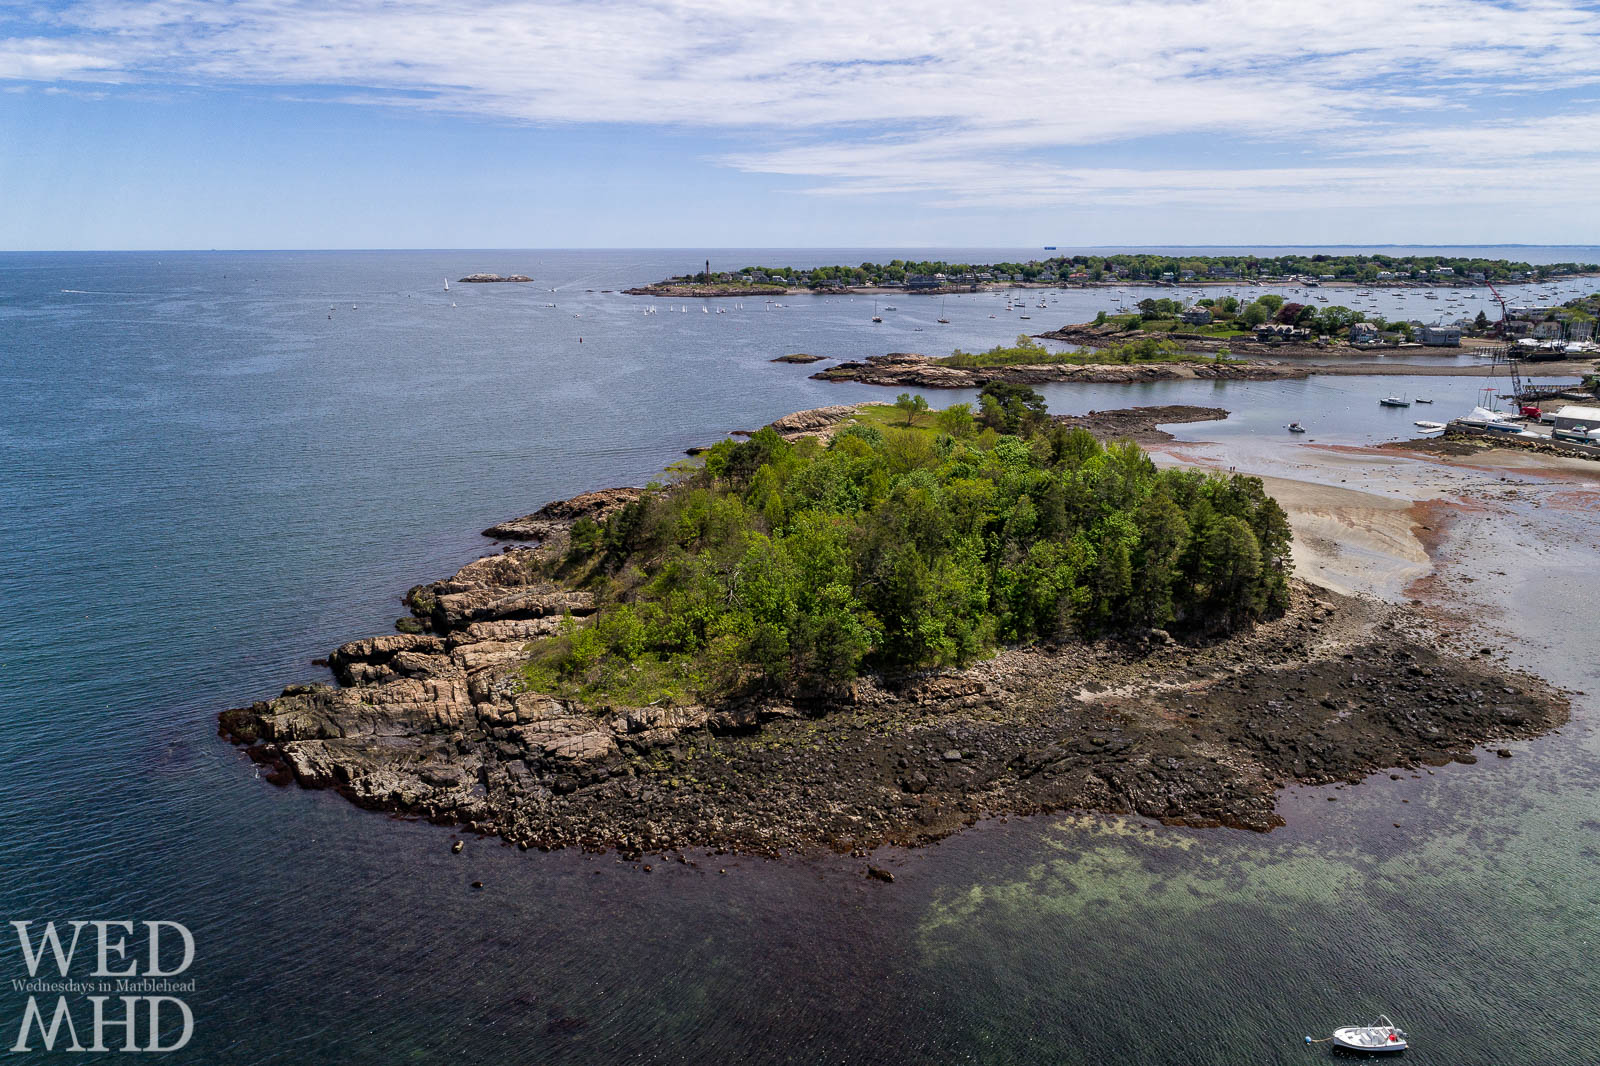 Low tide at Brown's Island captured from above reveals shallow water and an active Marblehead harbor in the distance